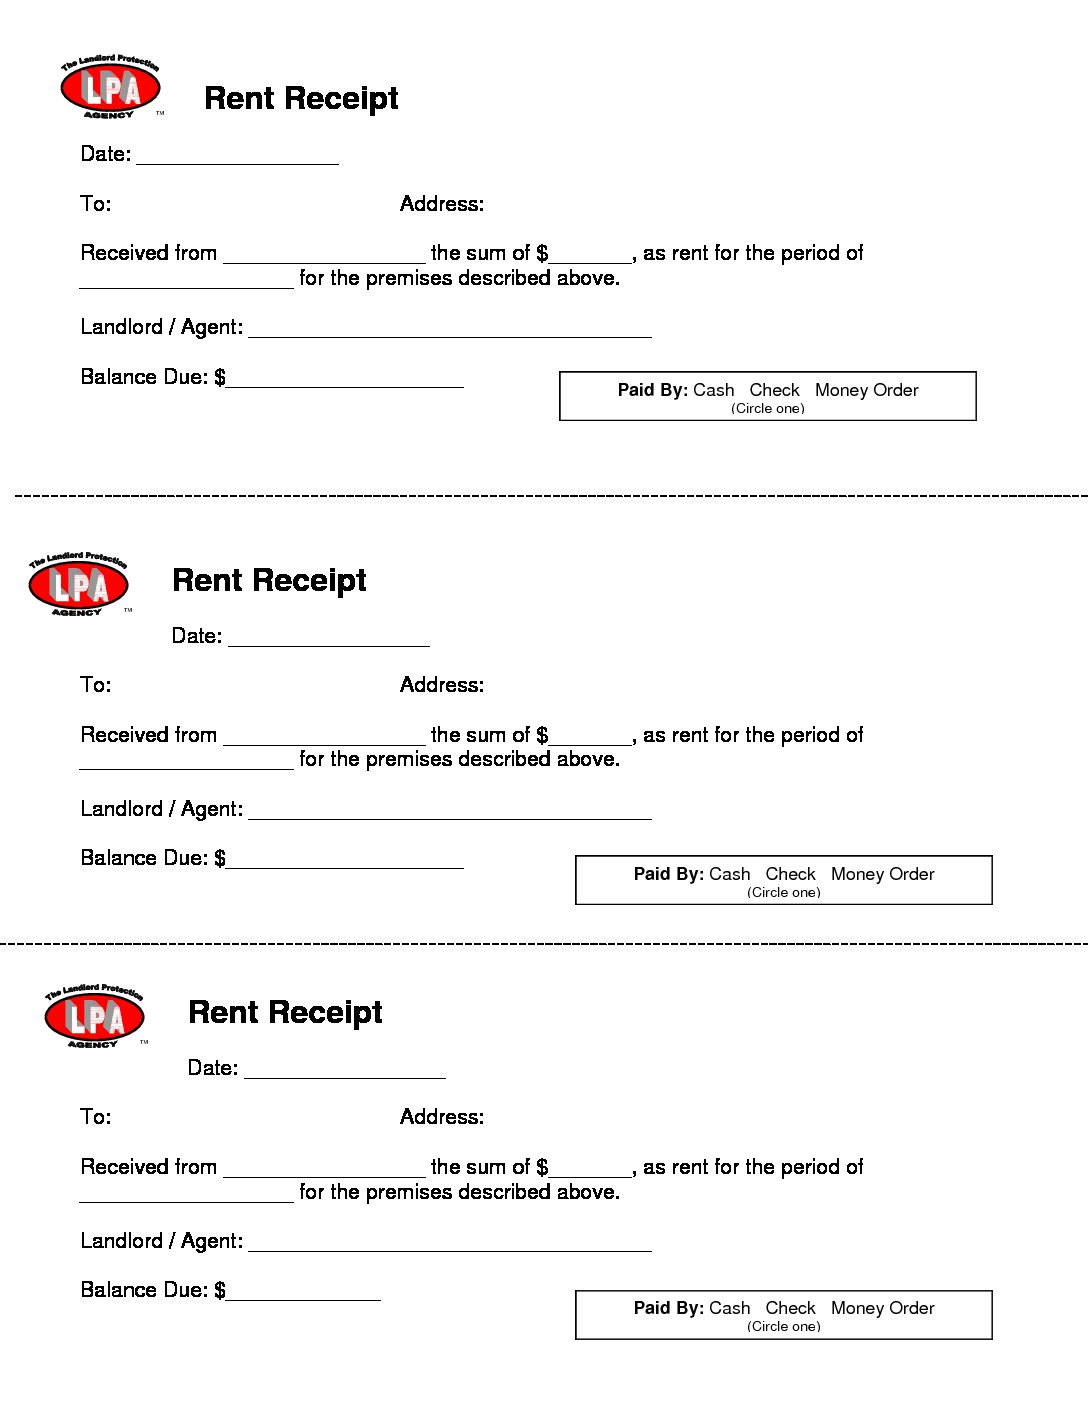 Free Rent Receipt Template and What Information to Include – Receipt for Rent Paid